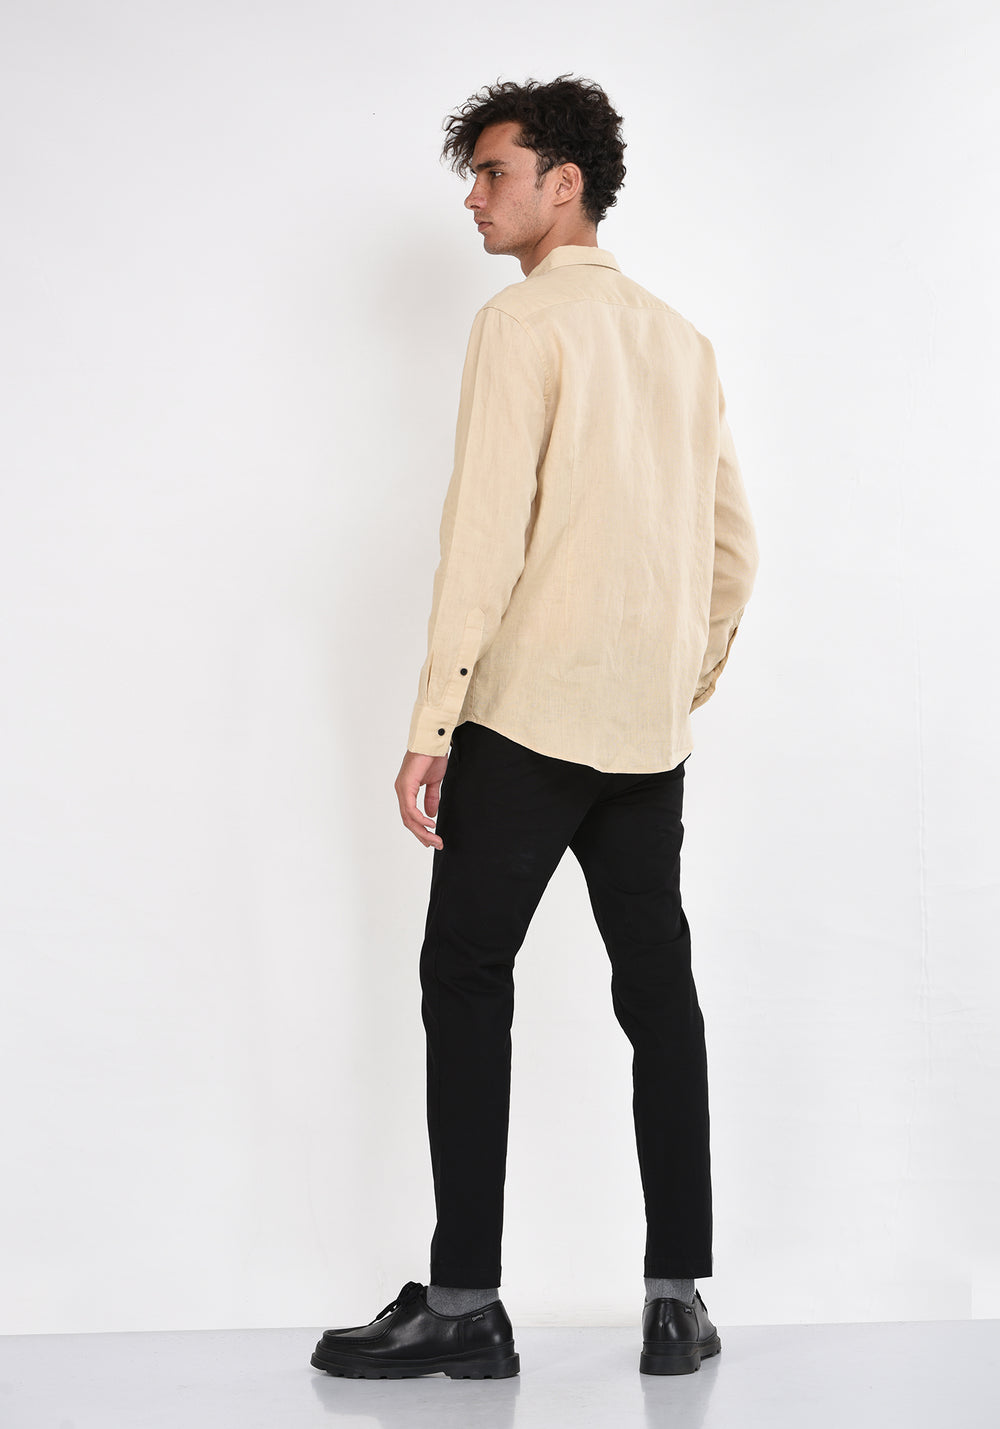 LONG SLEEVED LINEN SHIRT WITH DARTS - BEIGE